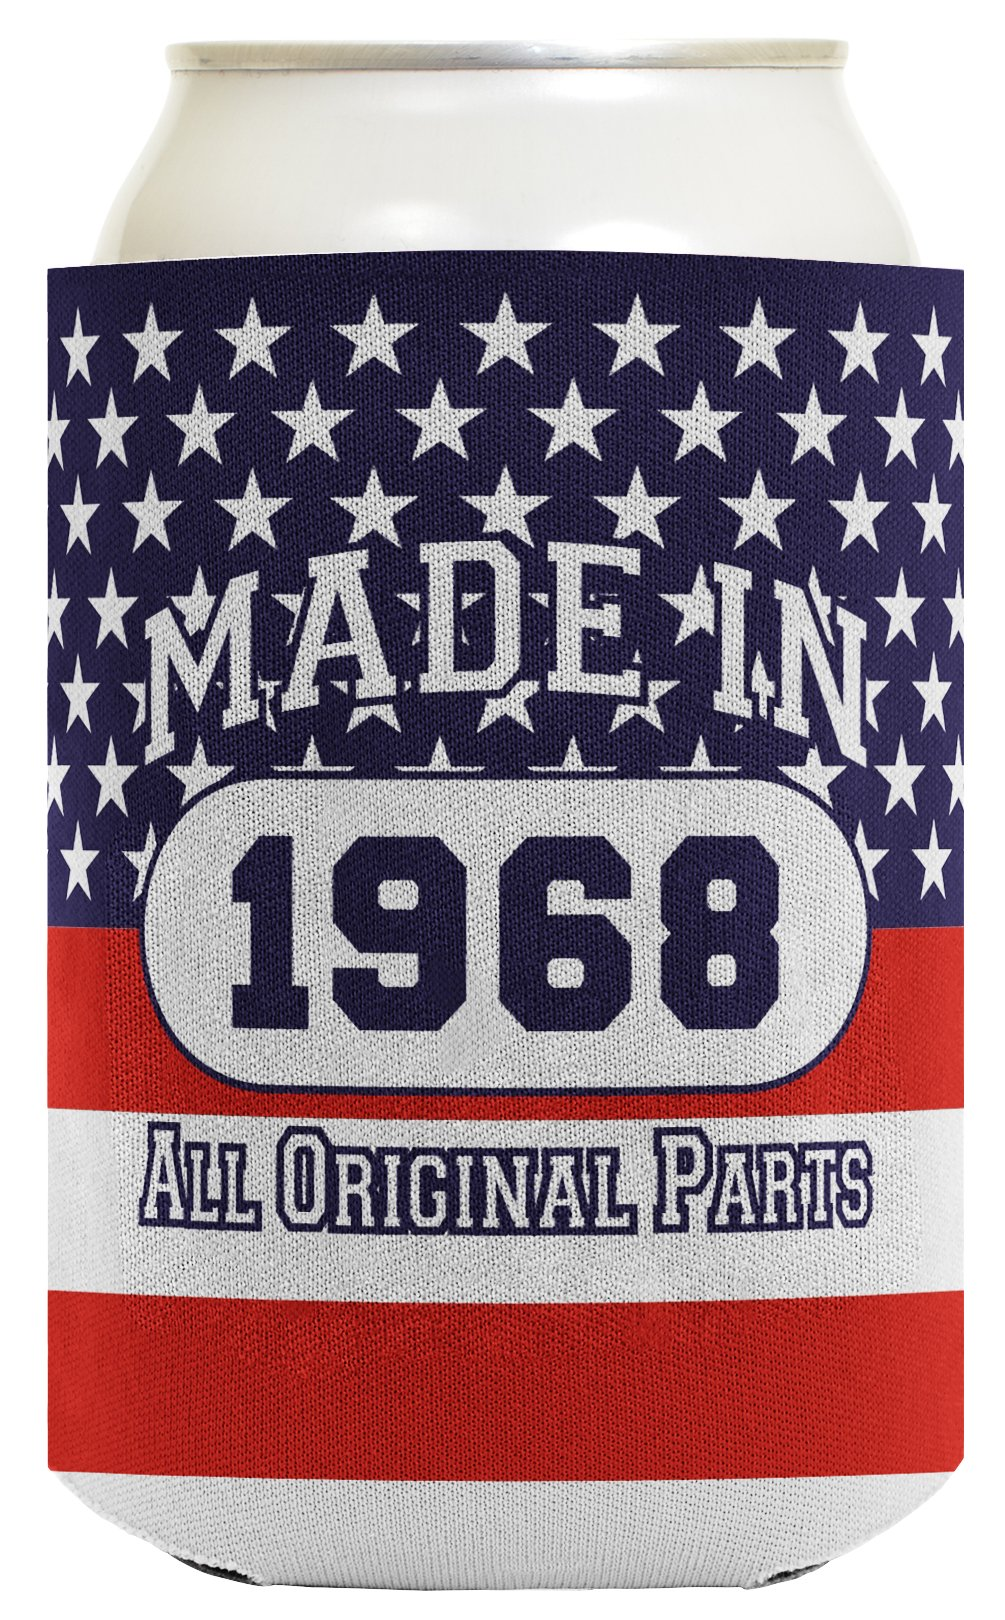 50th Birthday Gift Coolie Made 1968 Can Coolies 2 Pack Can Coolie Drink Coolers Coolies Patriotic by ThisWear (Image #2)